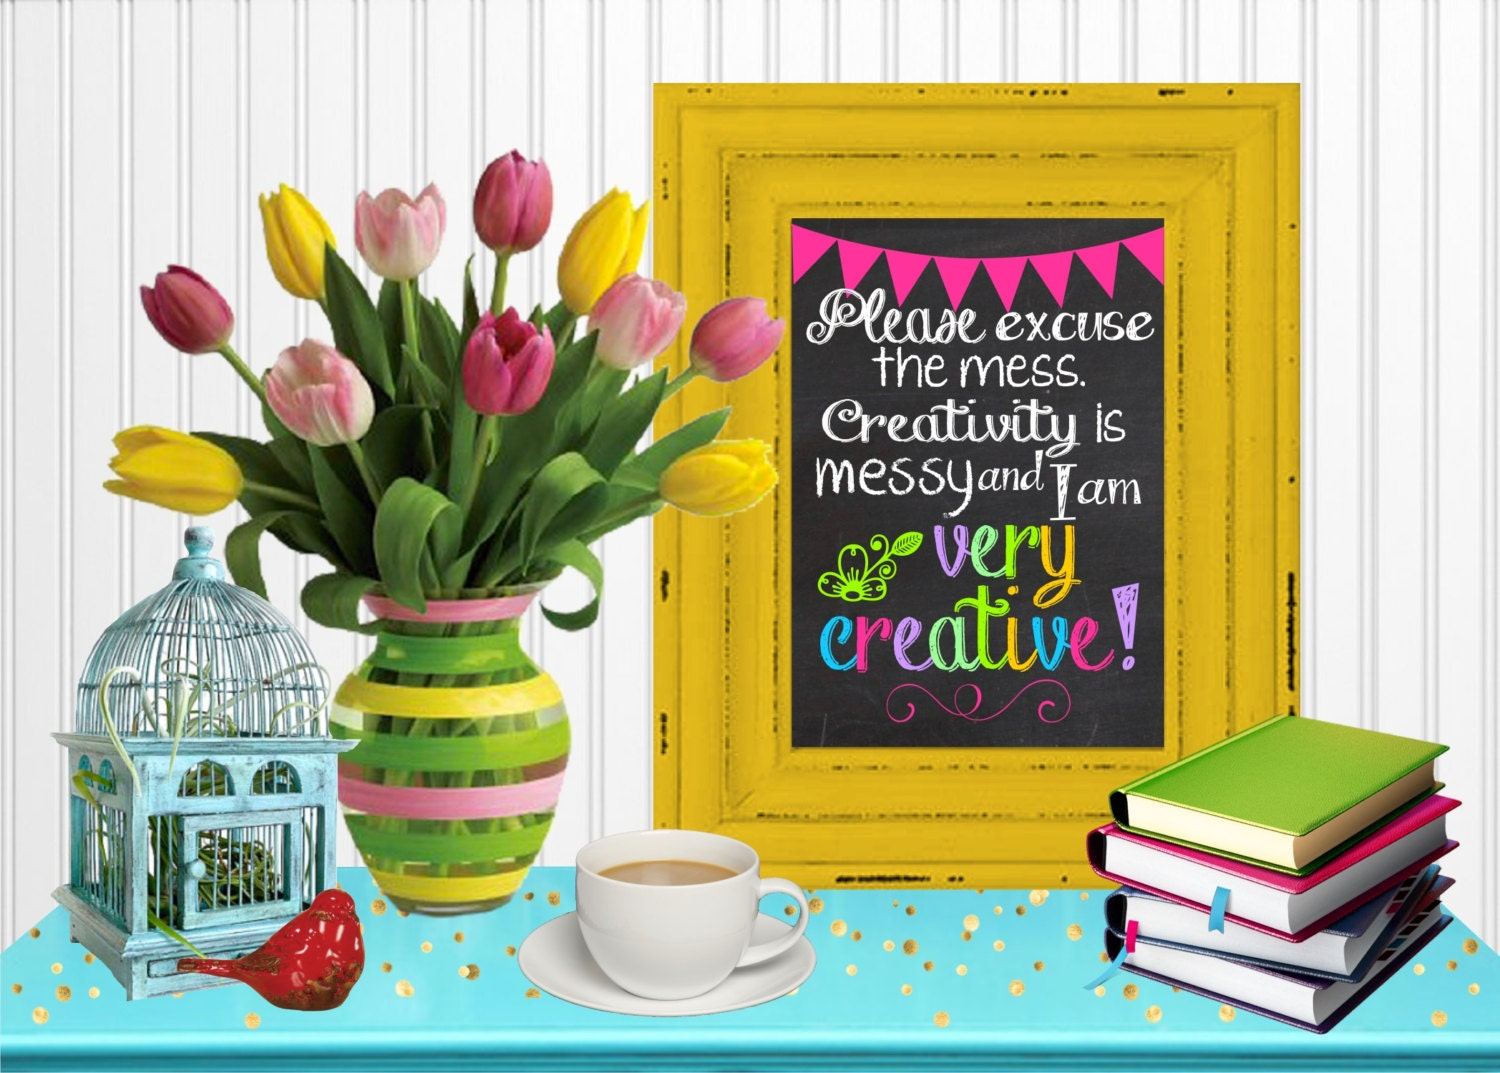 Wall Decor Craft Room : Creativity is messy chalkboard wall art craft room decor